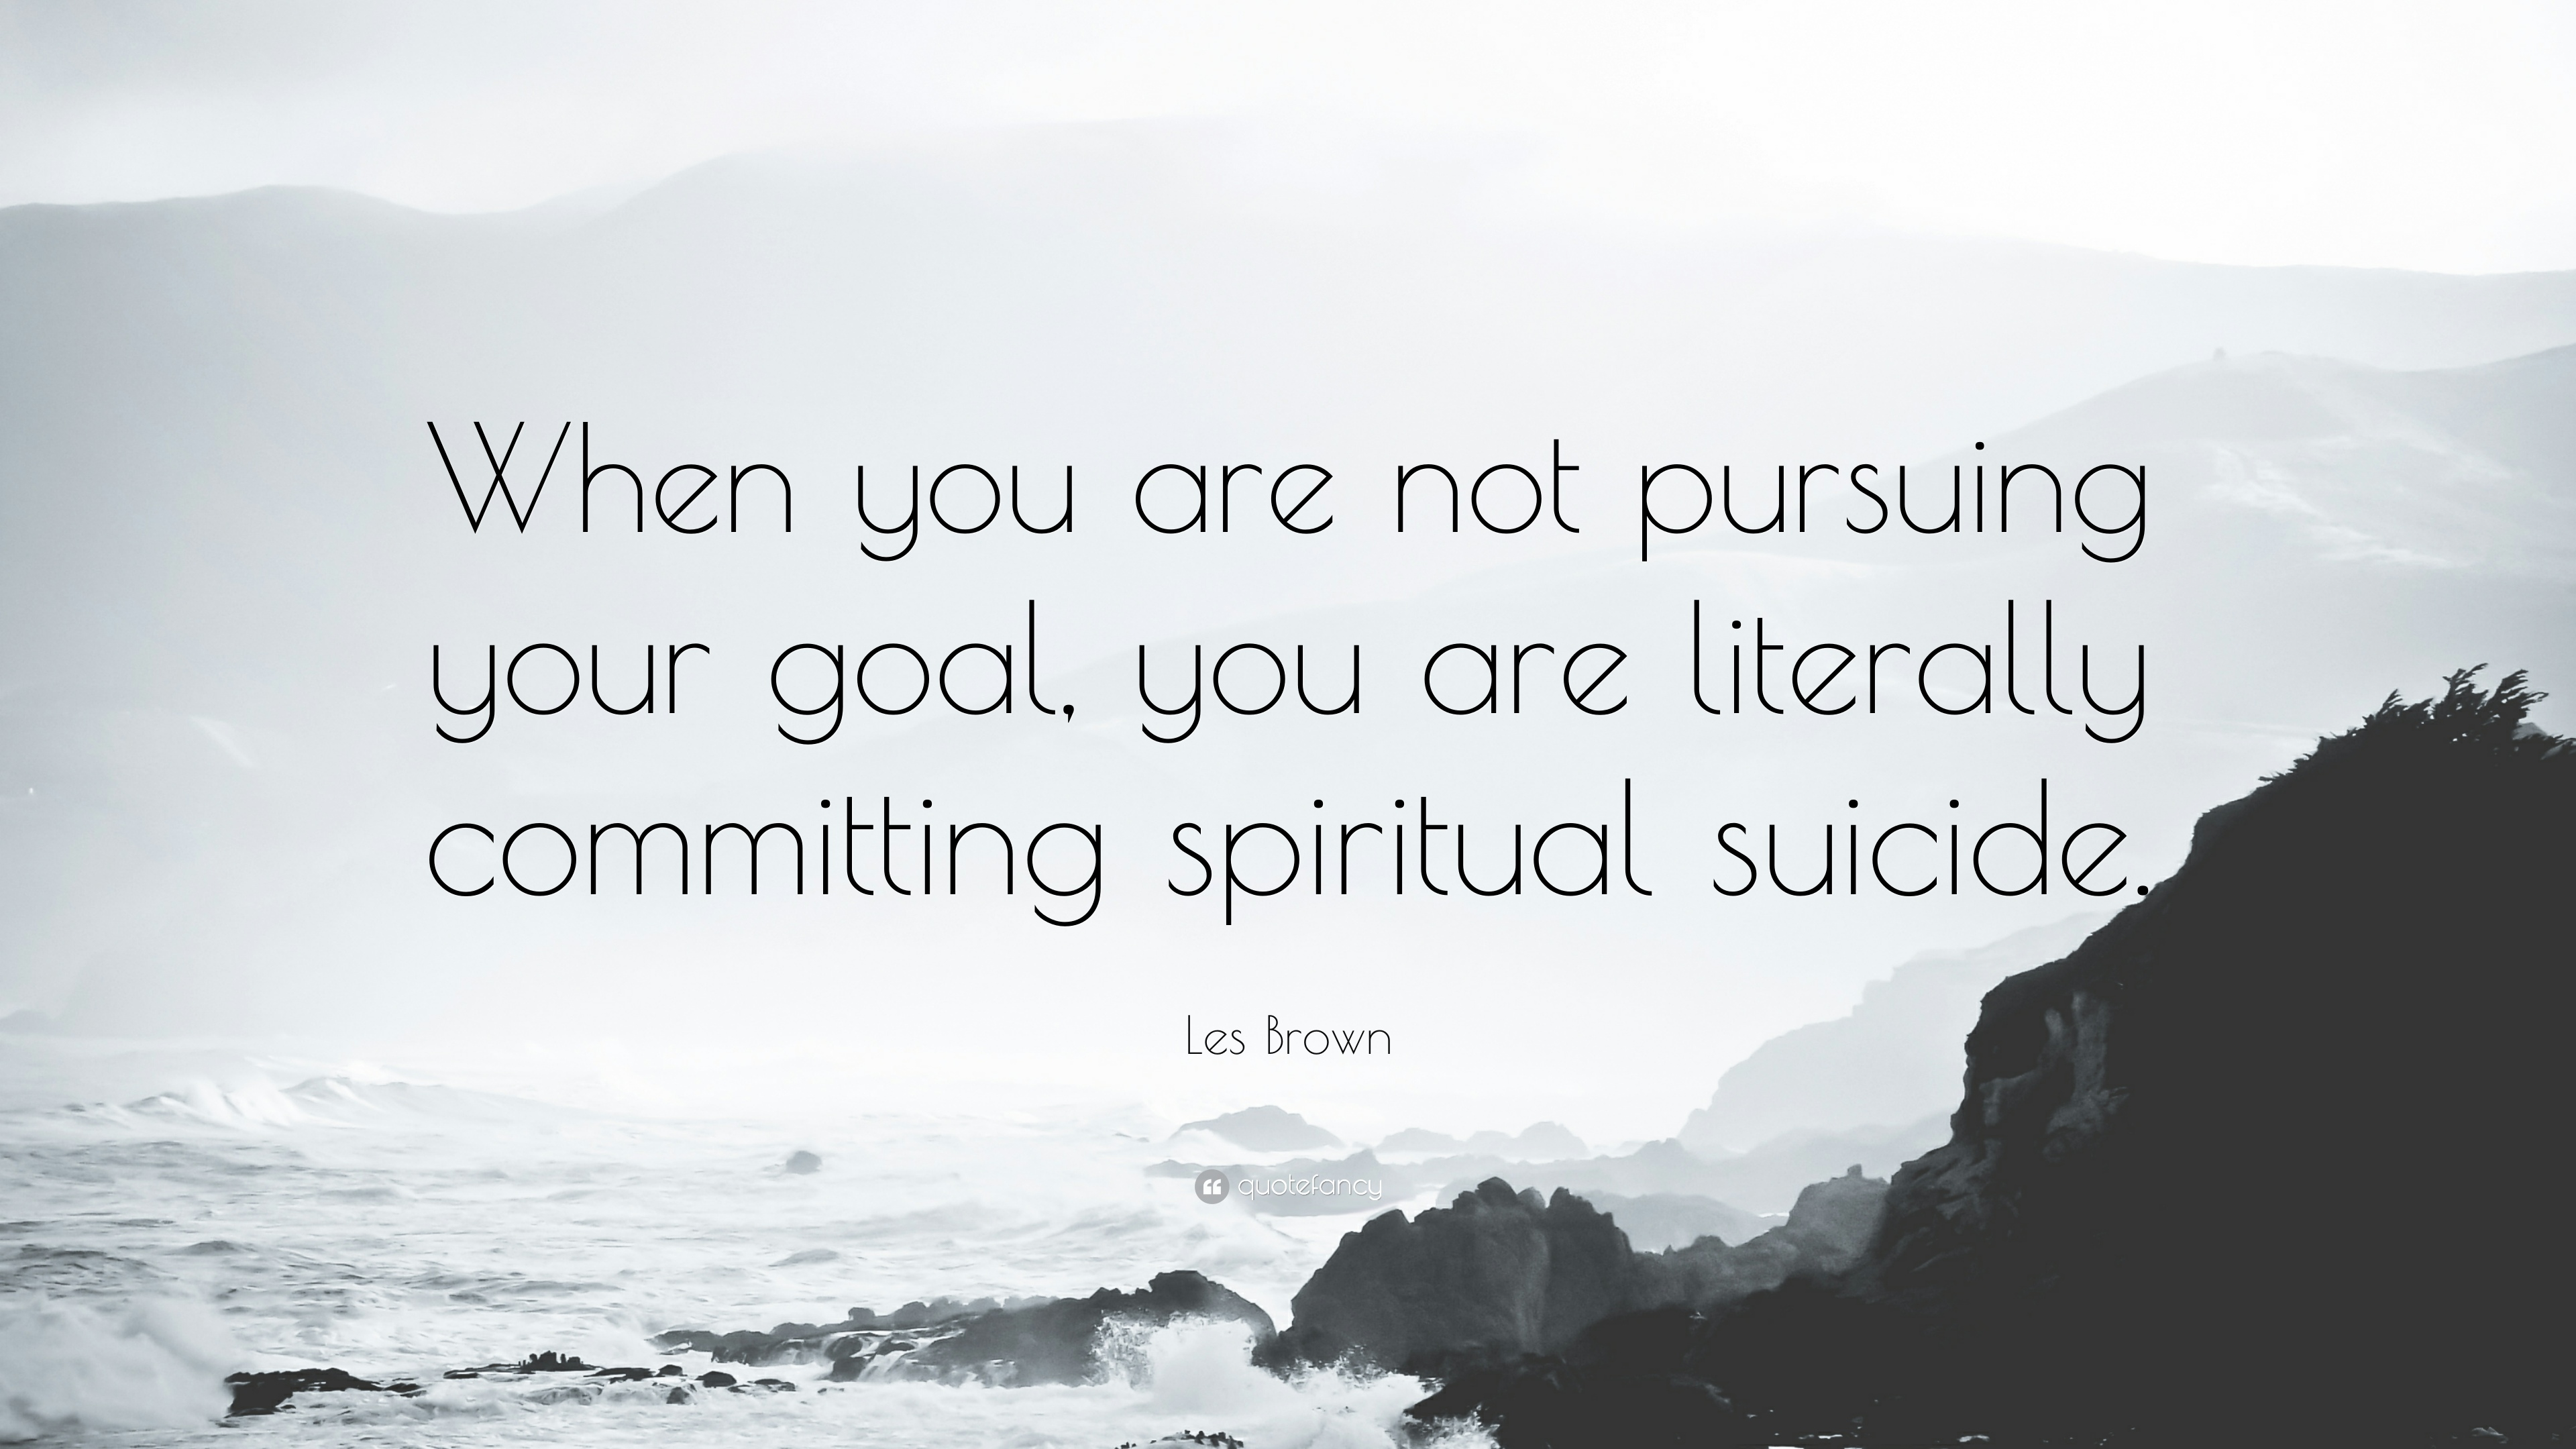 goal quotes quotefancy goal quotes when you are not pursuing your goal you are literally committing